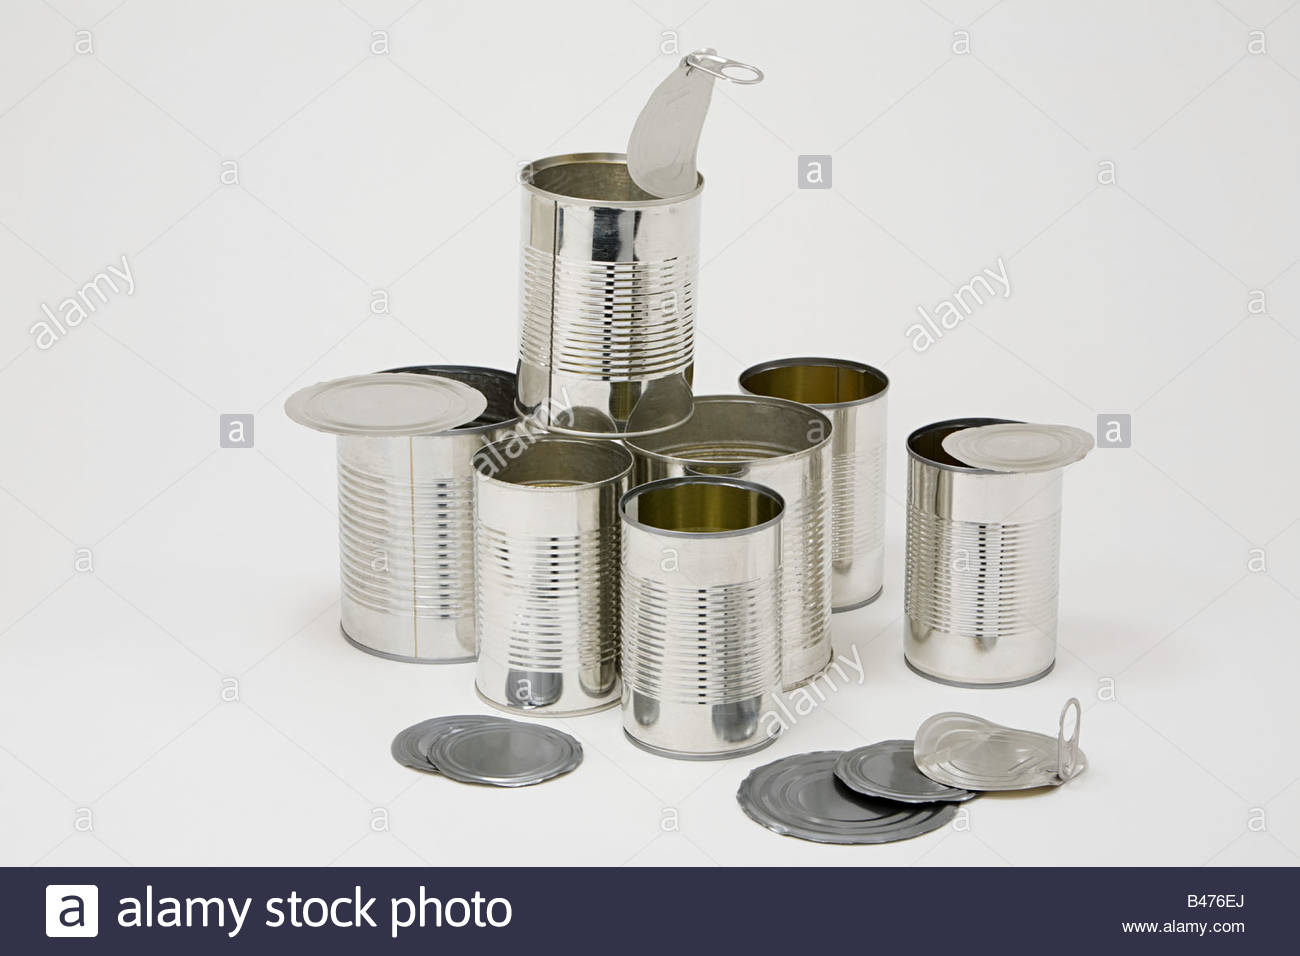 Stack of cans - Stock Image